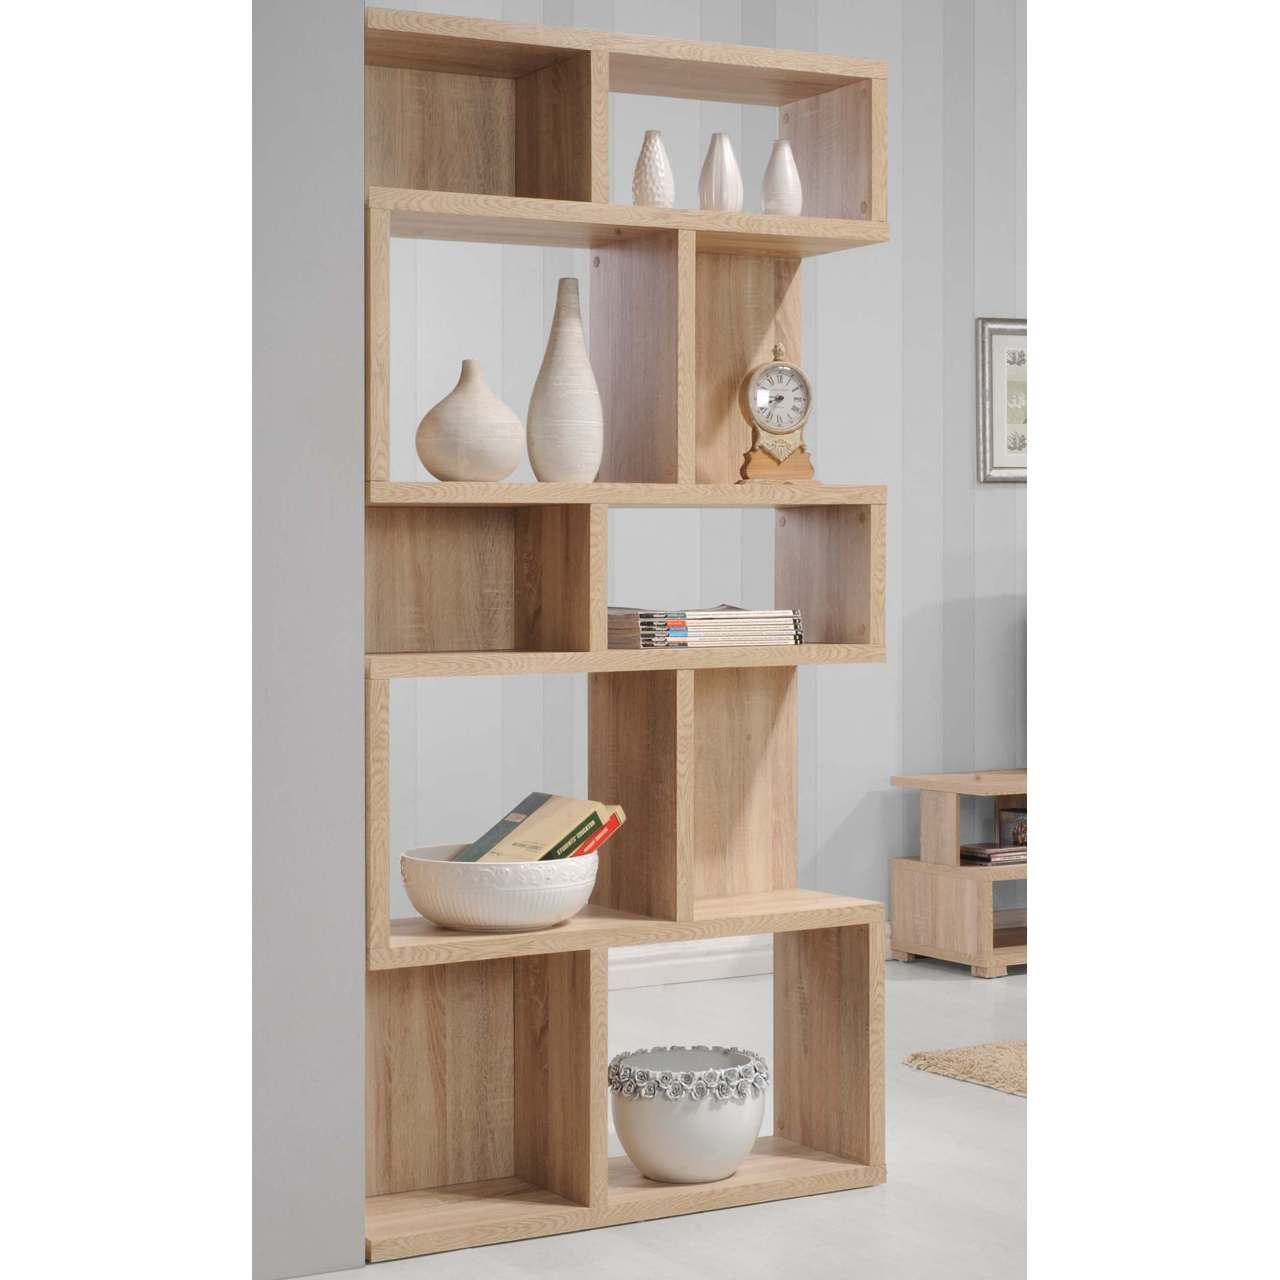 Sorrento Cube Shelf Unit Oak Shelves Shelf Unit Wide Bookcase